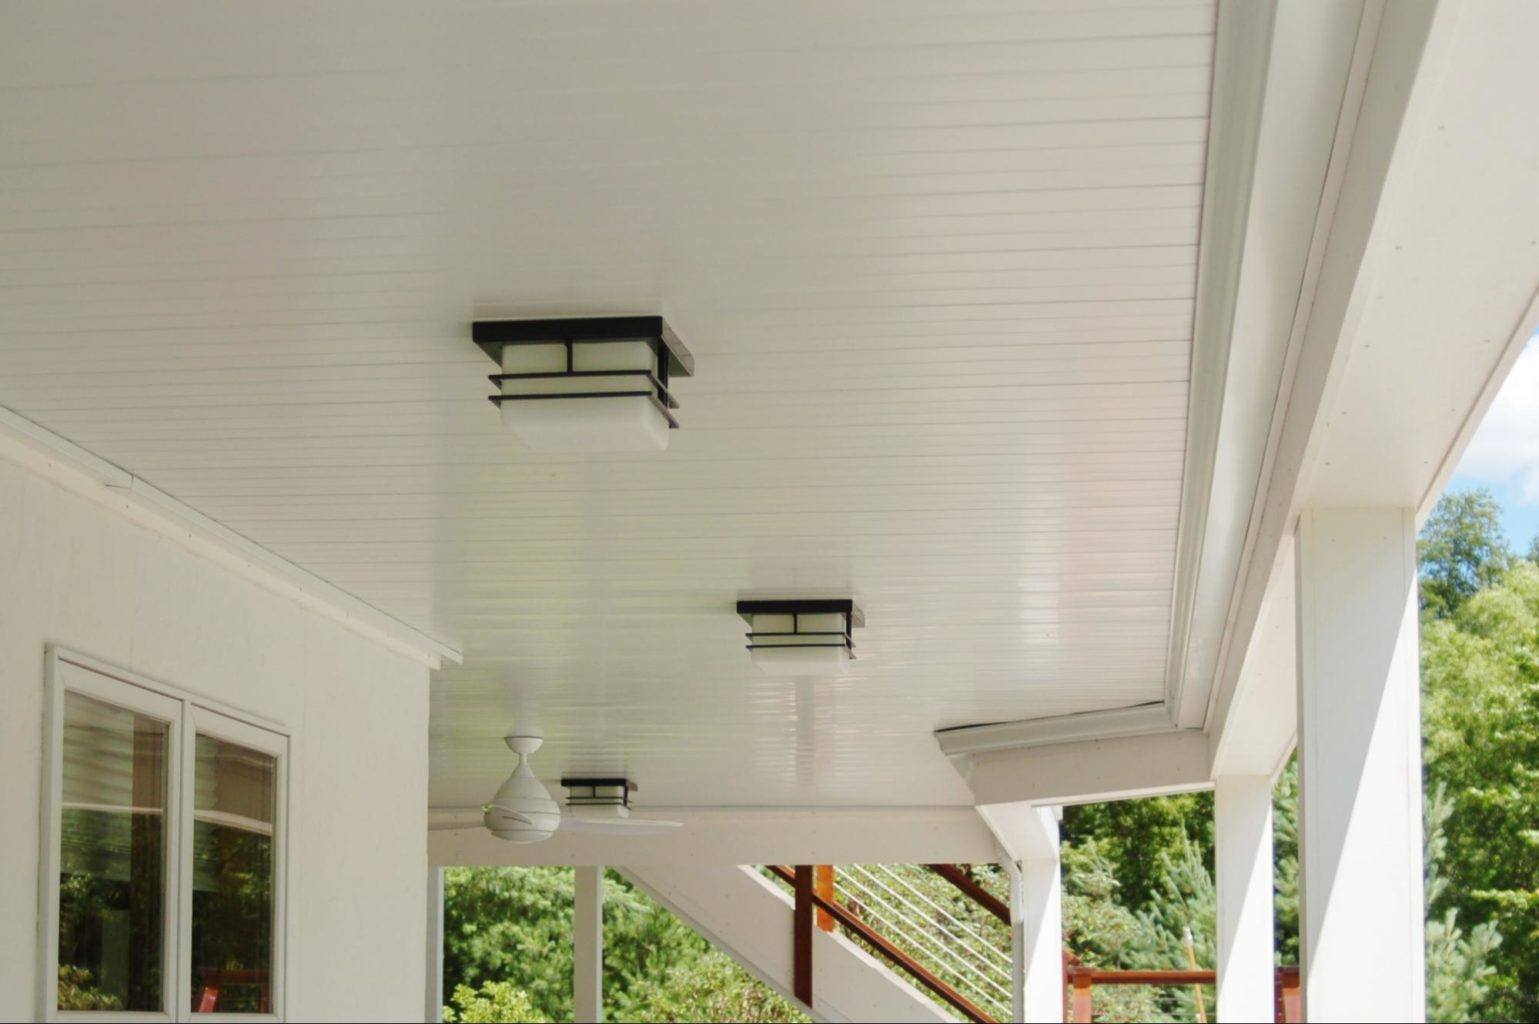 After can light install